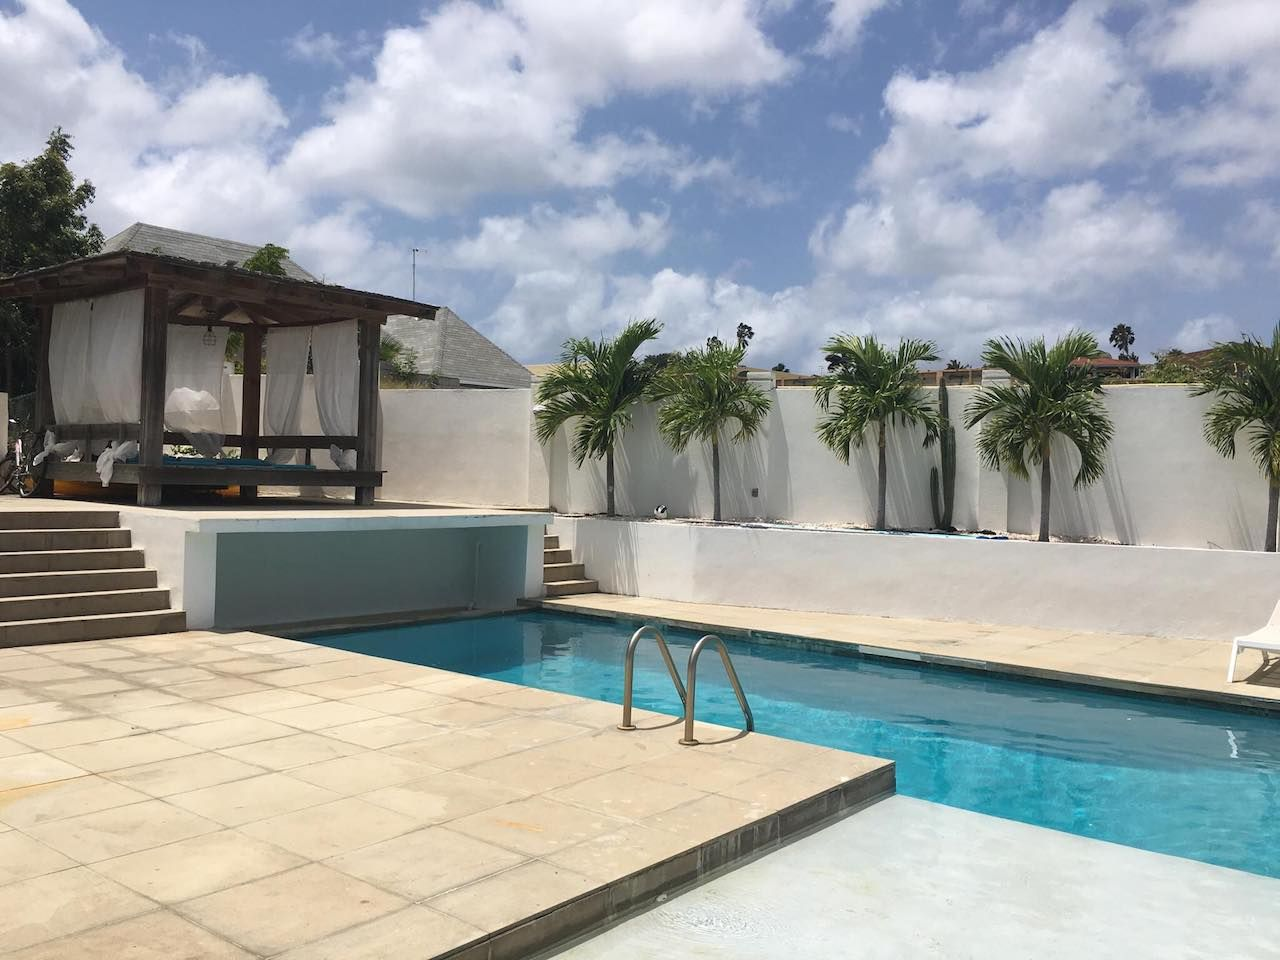 Airbnb with nice long pool in Curacao